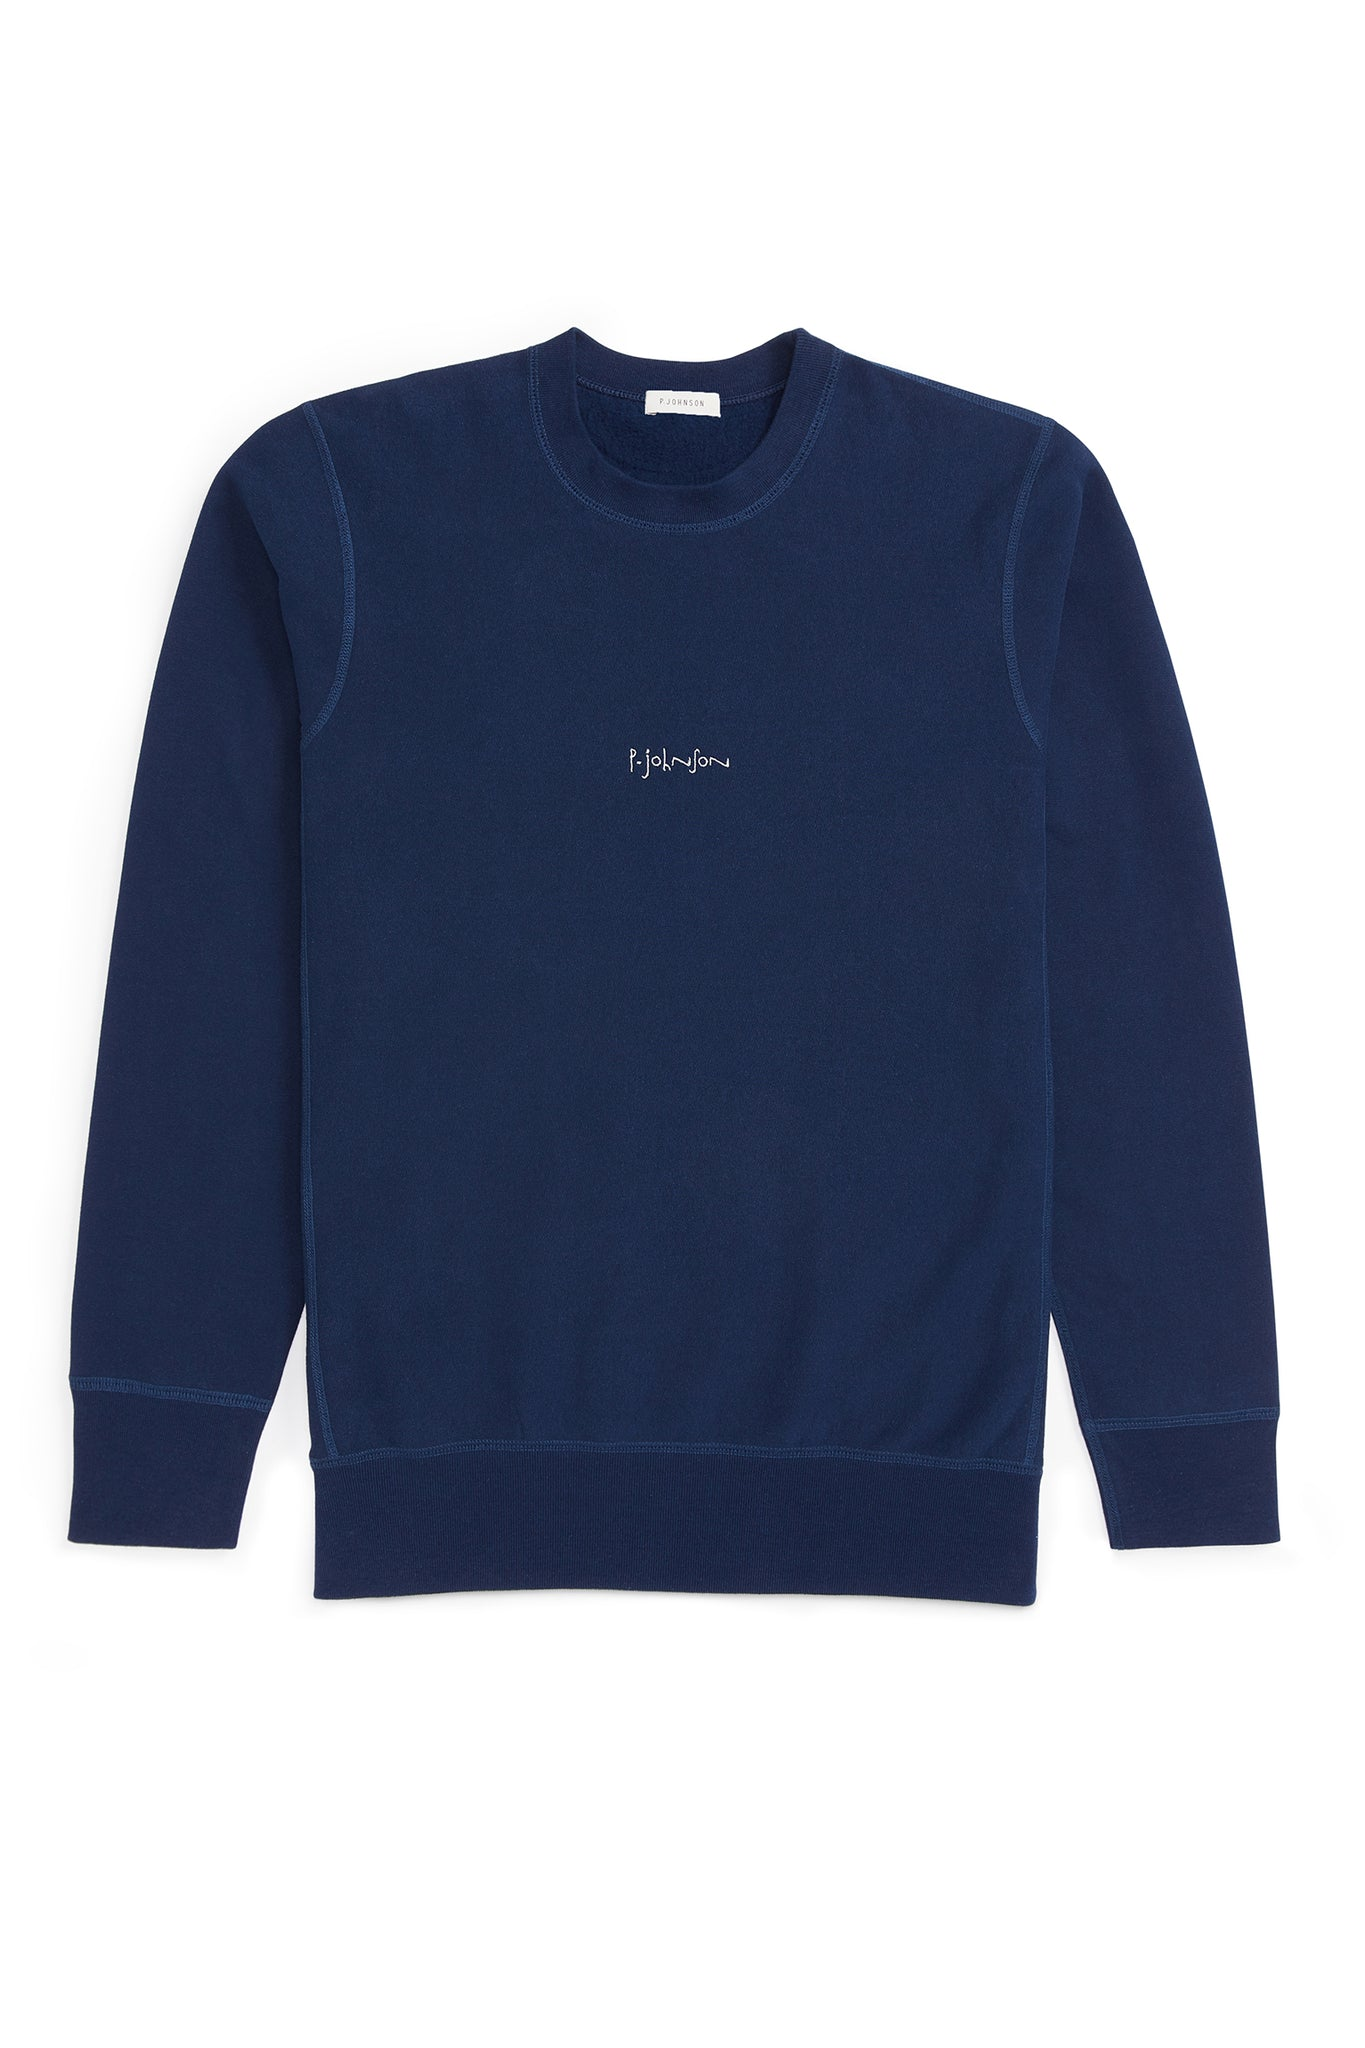 Navy Crewneck Sweater